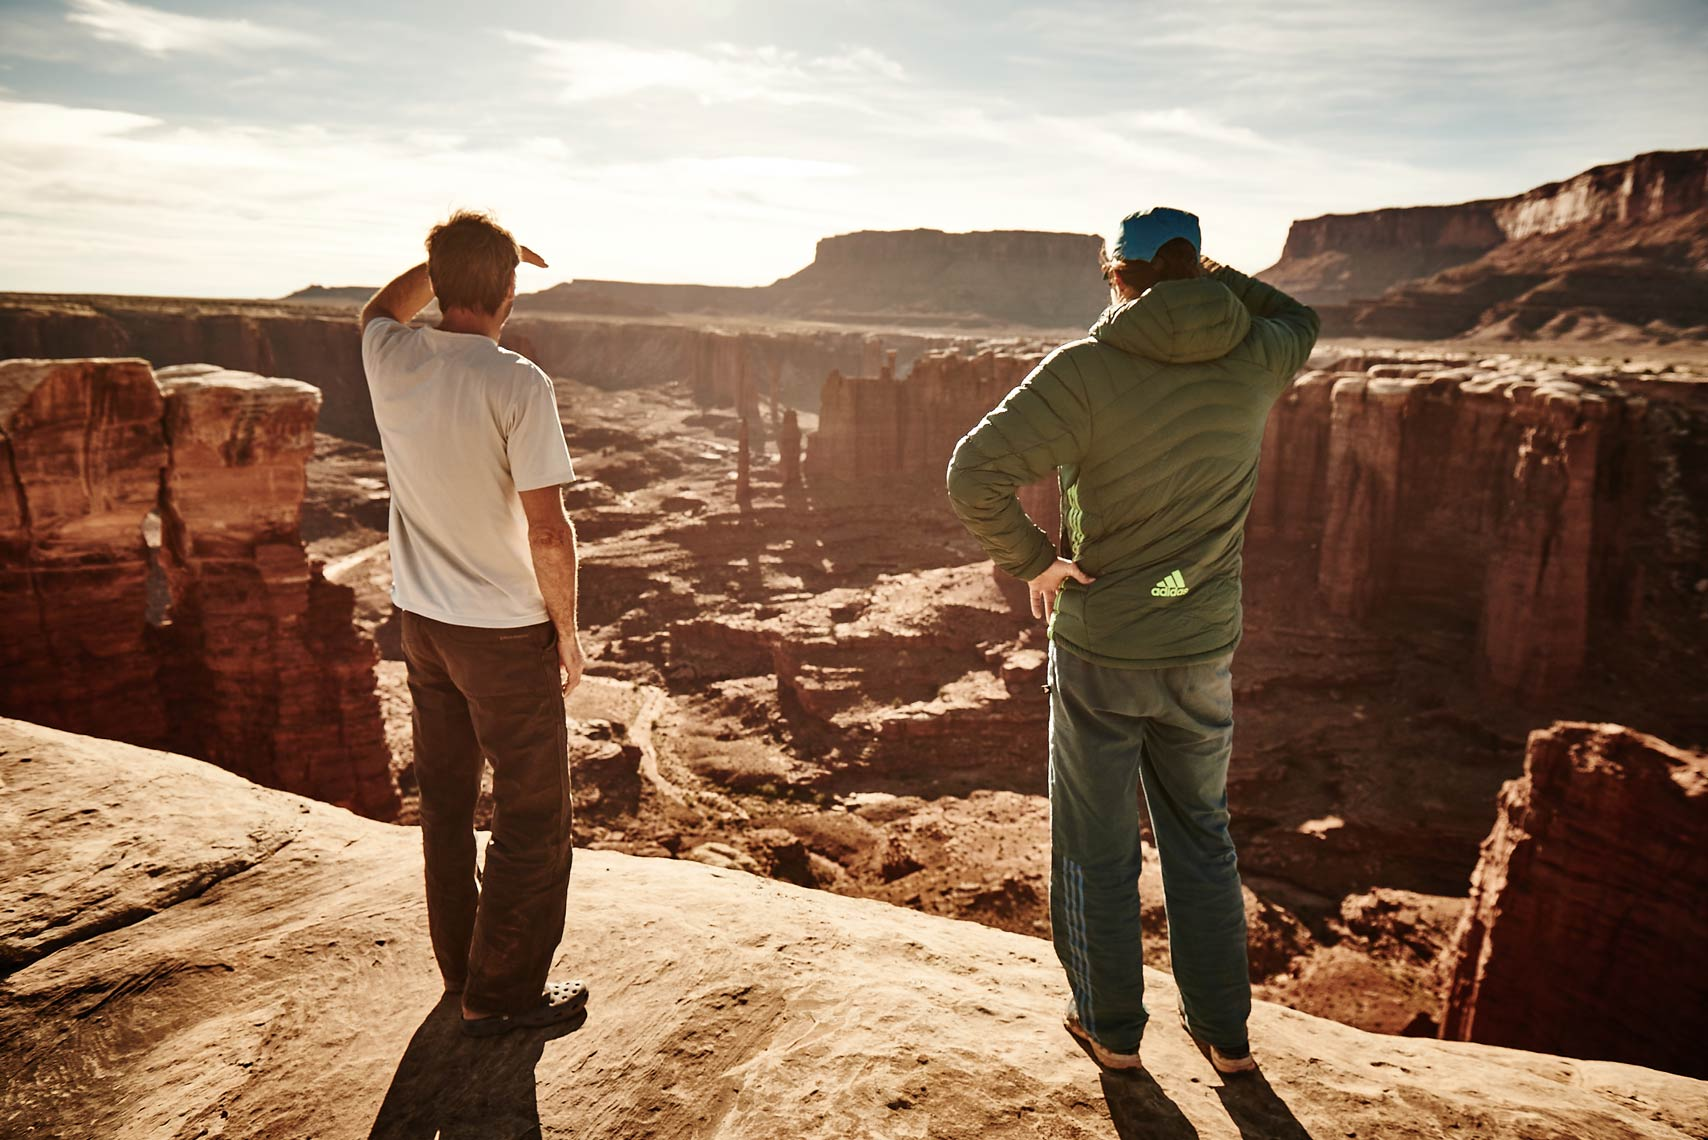 RD_141027_MOAB_5370